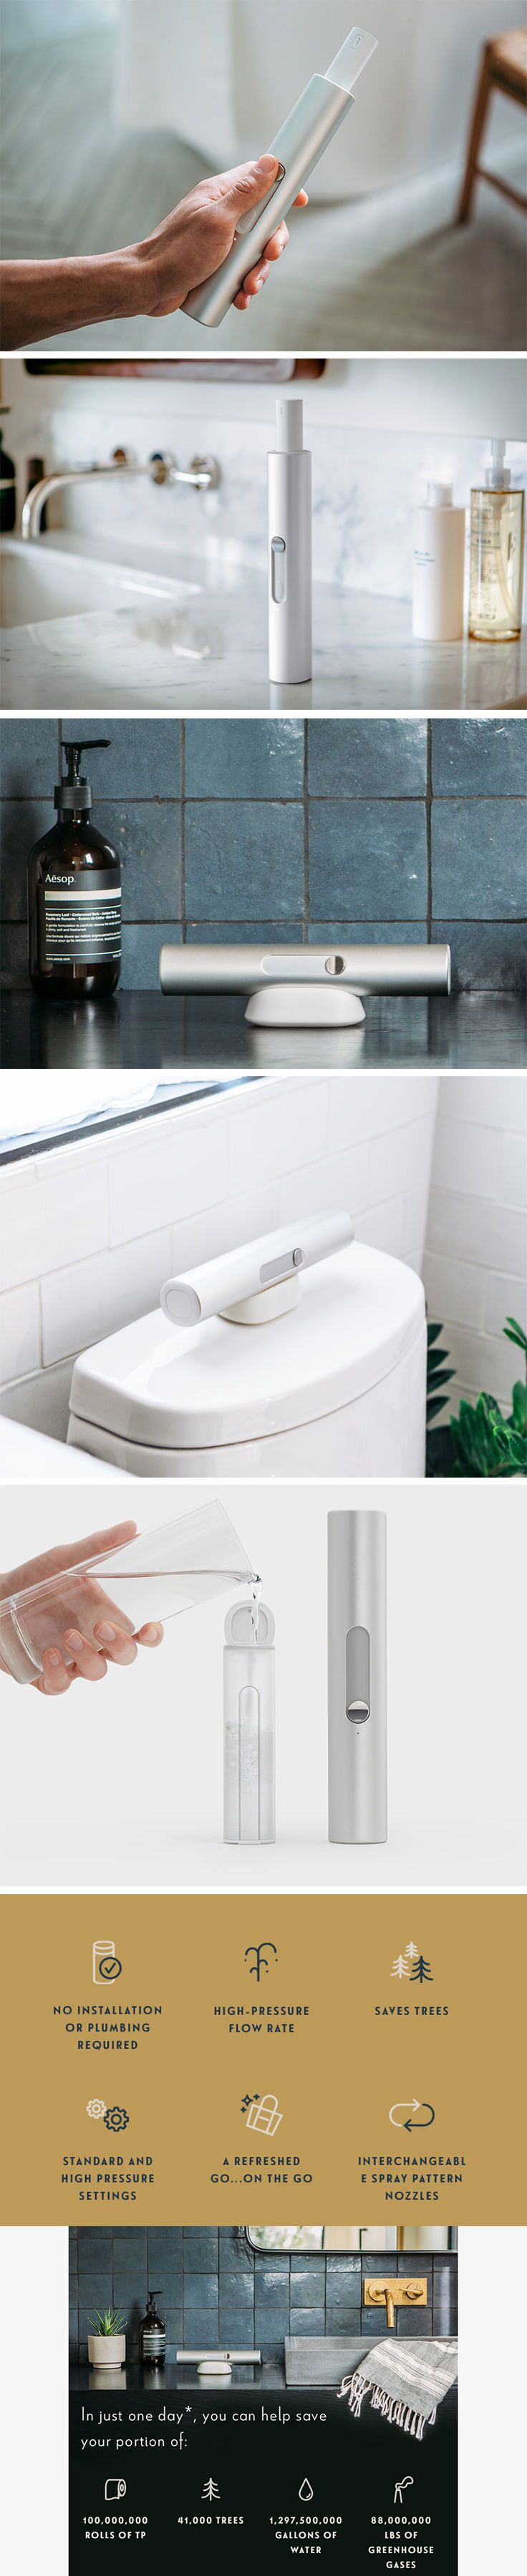 This Portable bidet is healthy for your behind and the